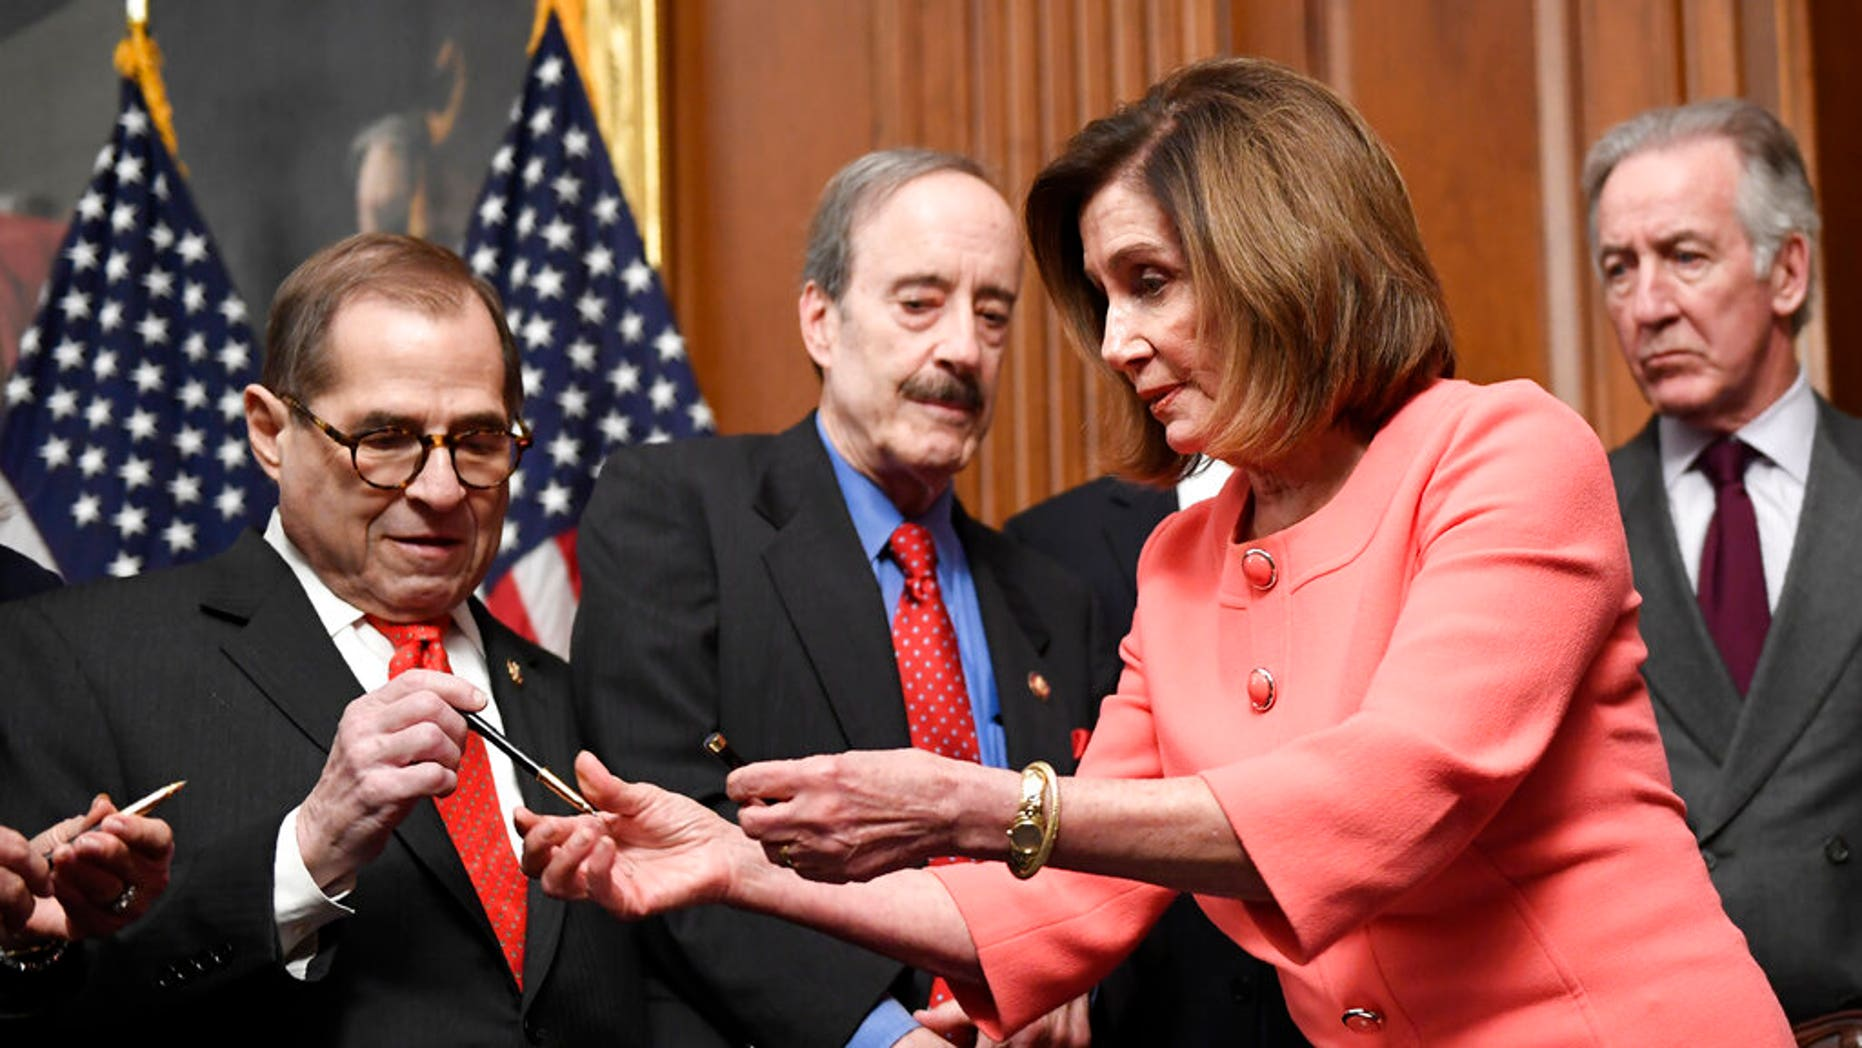 Westlake Legal Group PelosiPensA_011620 Pelosi hands out commemorative pens as House transmits Trump impeachment articles to Senate fox-news/columns/fox-news-first fox news fnc/us fnc article 6fa42392-de2d-5fbb-8415-b43d654e4958